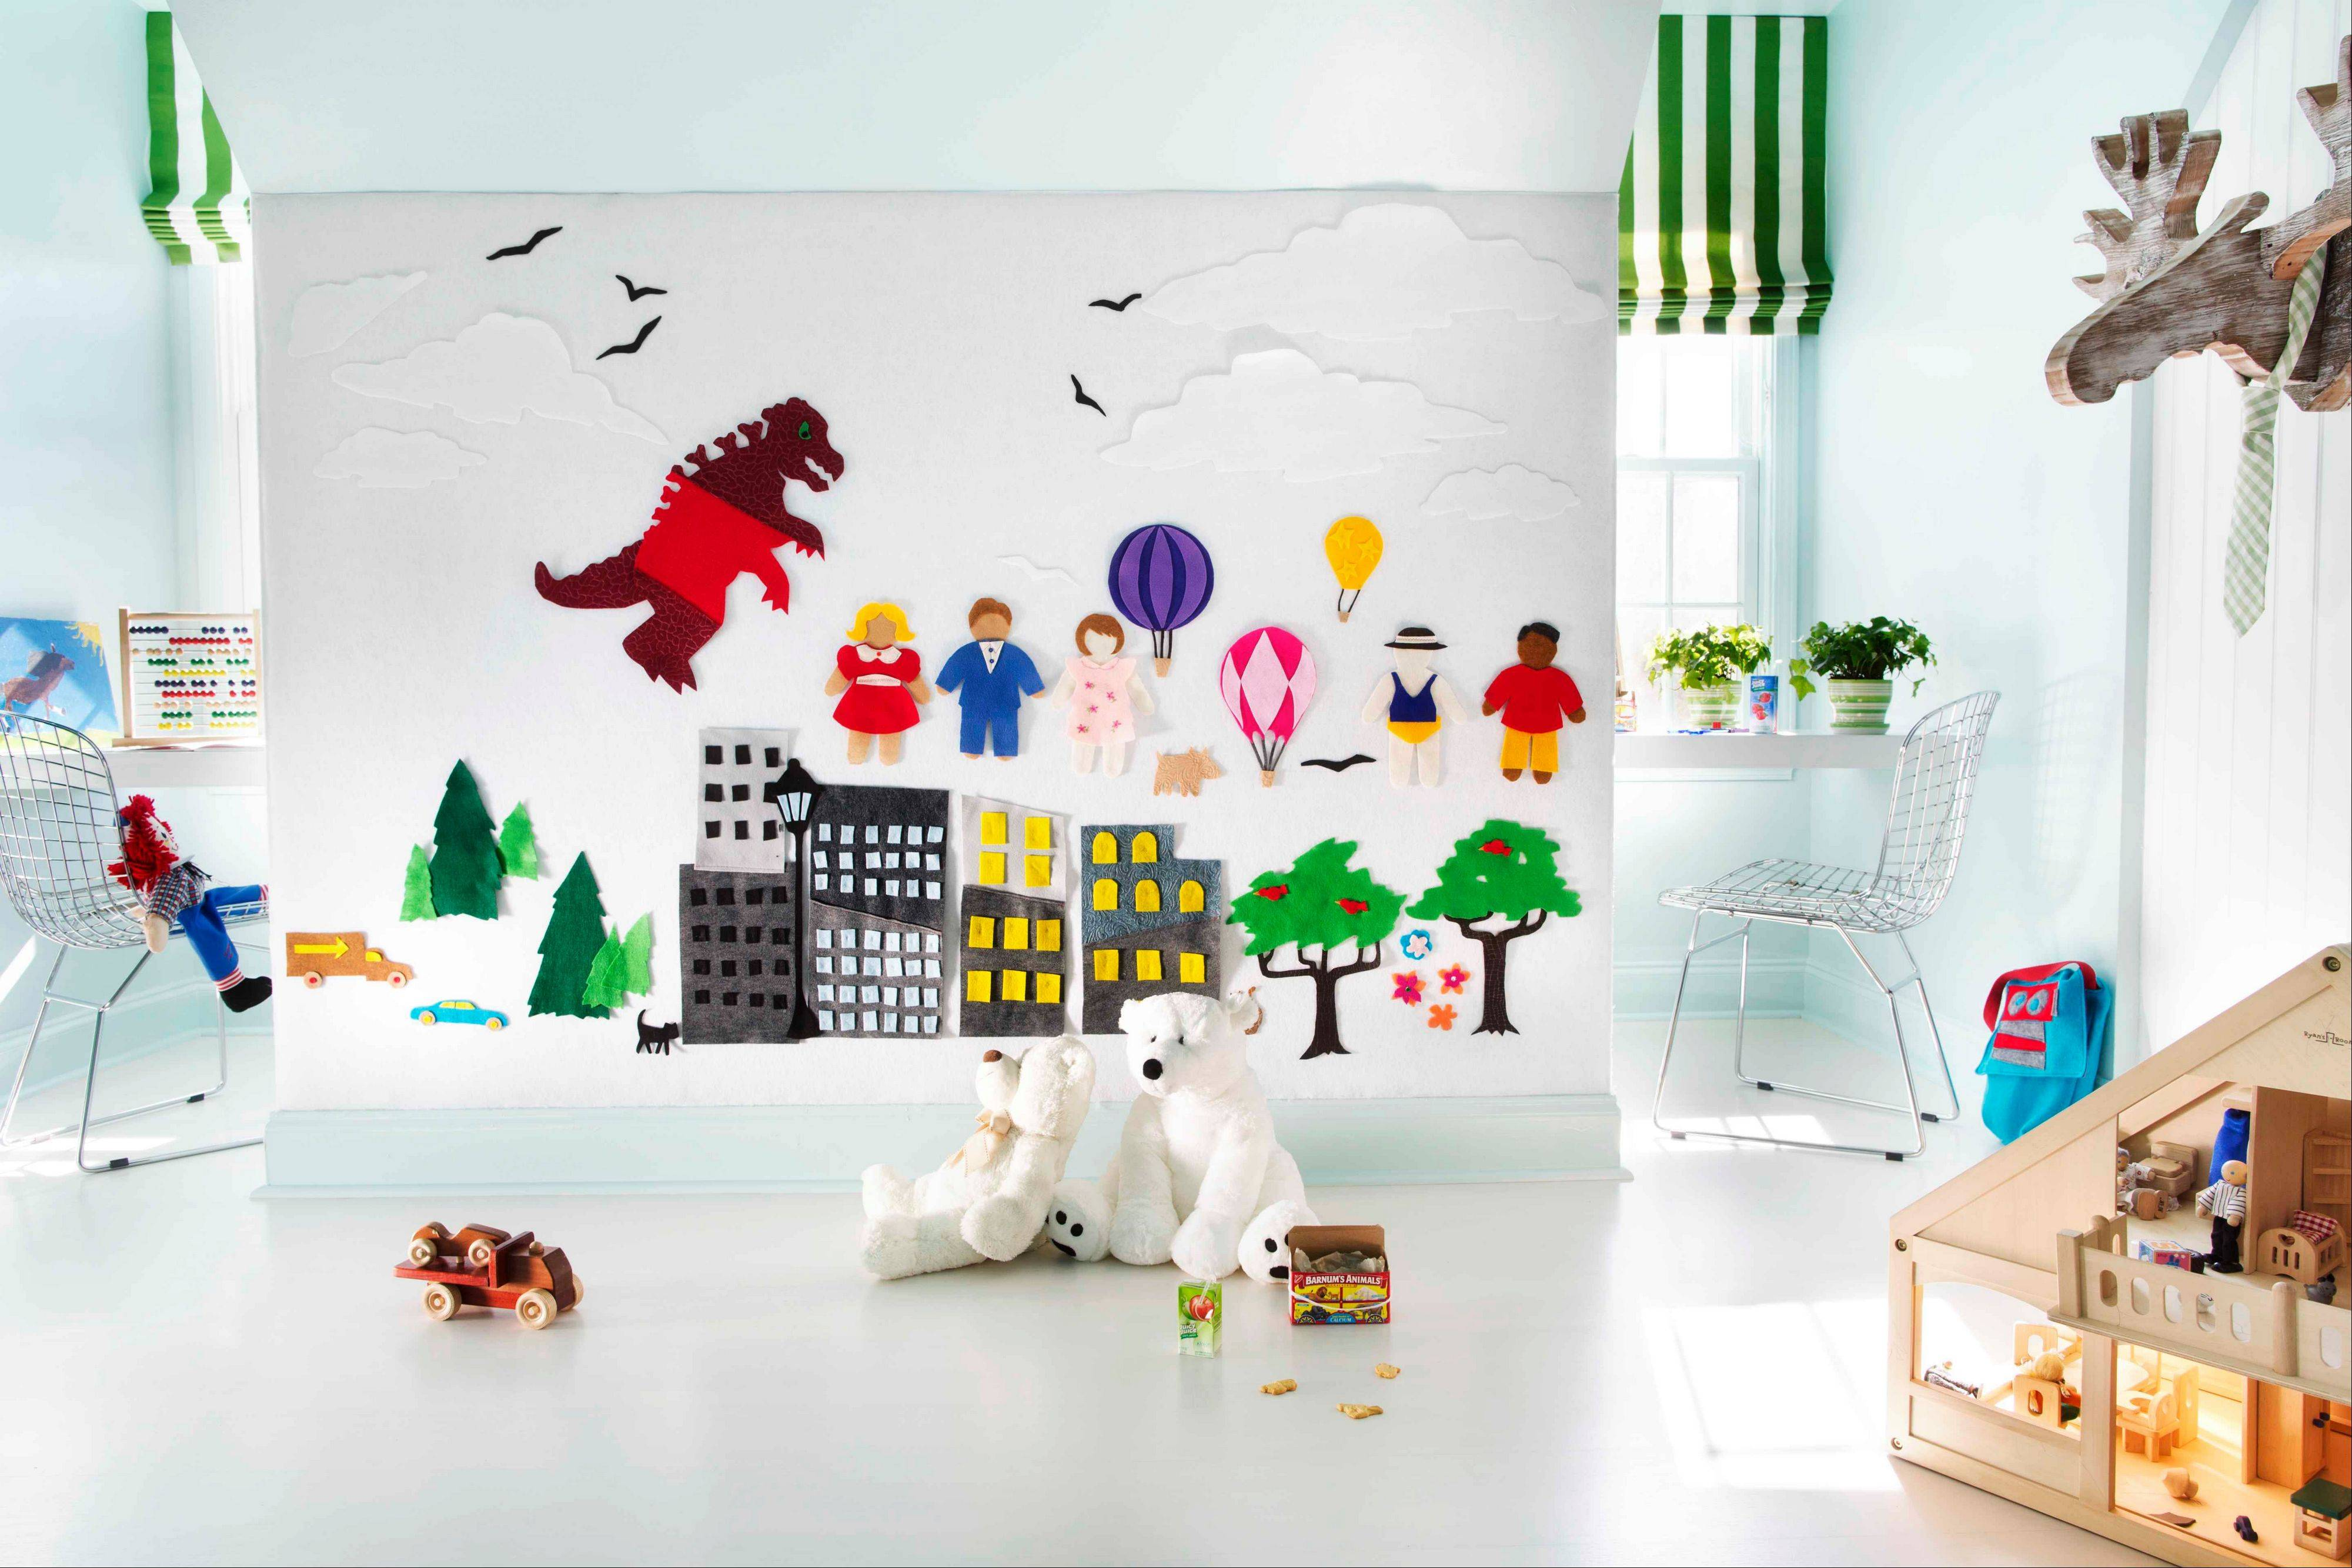 Put a fresh twist on felt by using it to create an interactive wall in a boy's play room. Flynn suggests that felt is becoming increasingly popular for upholstery and crafting and can be used in unexpected ways.